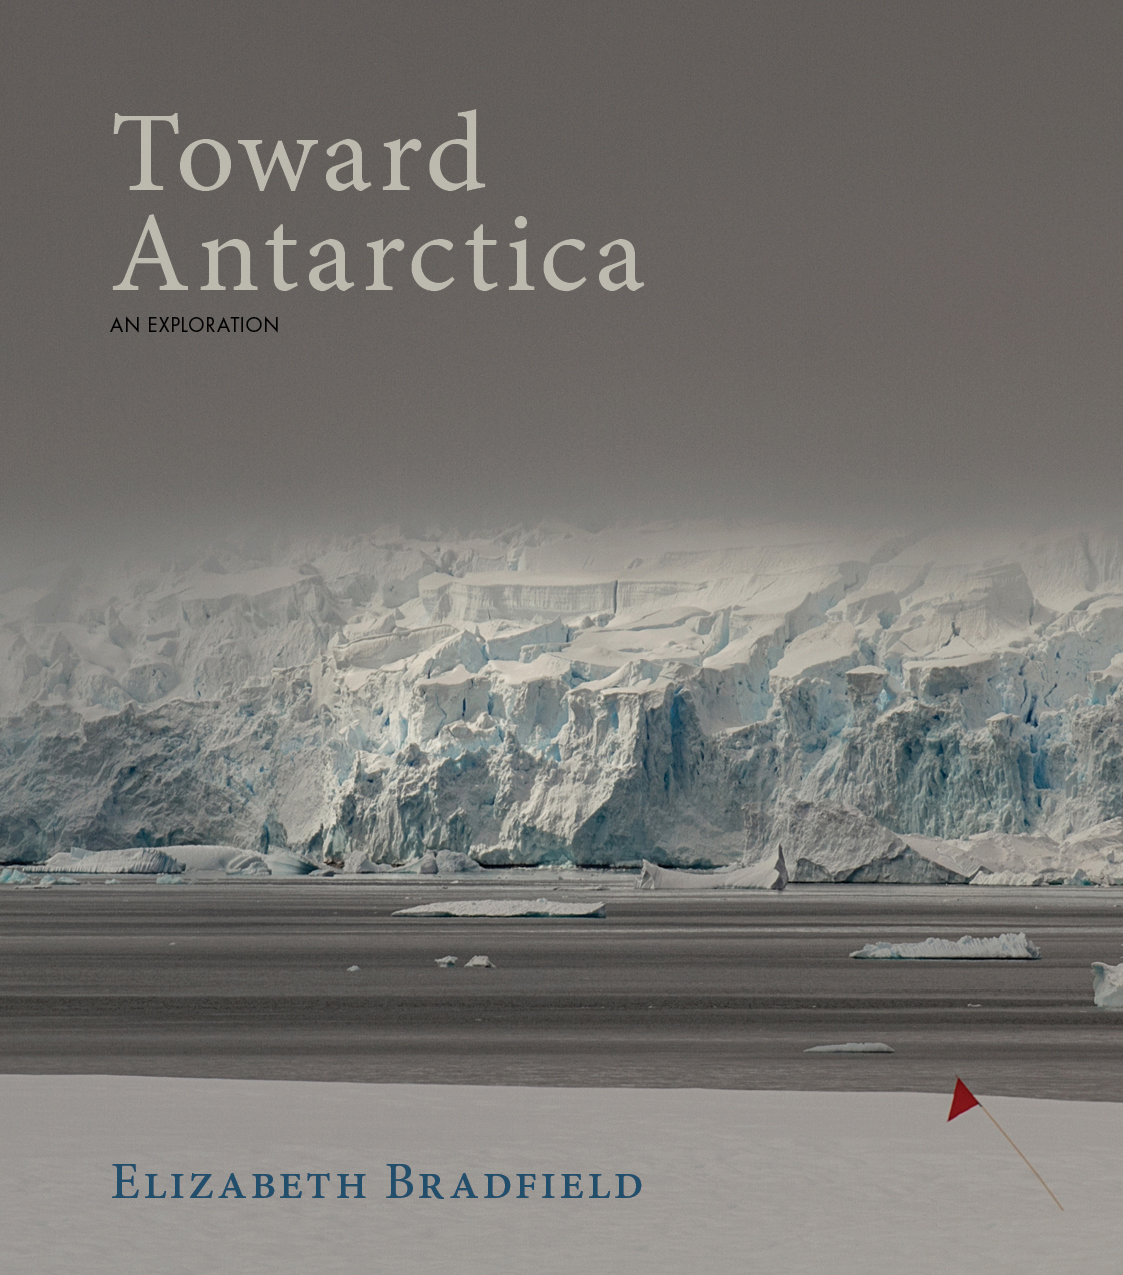 A photograph of the ice glaciers in Antartica and a red flag post towards the bottom and white script that reads Toward Antartica an exploration by Elizabeth Bradfield.